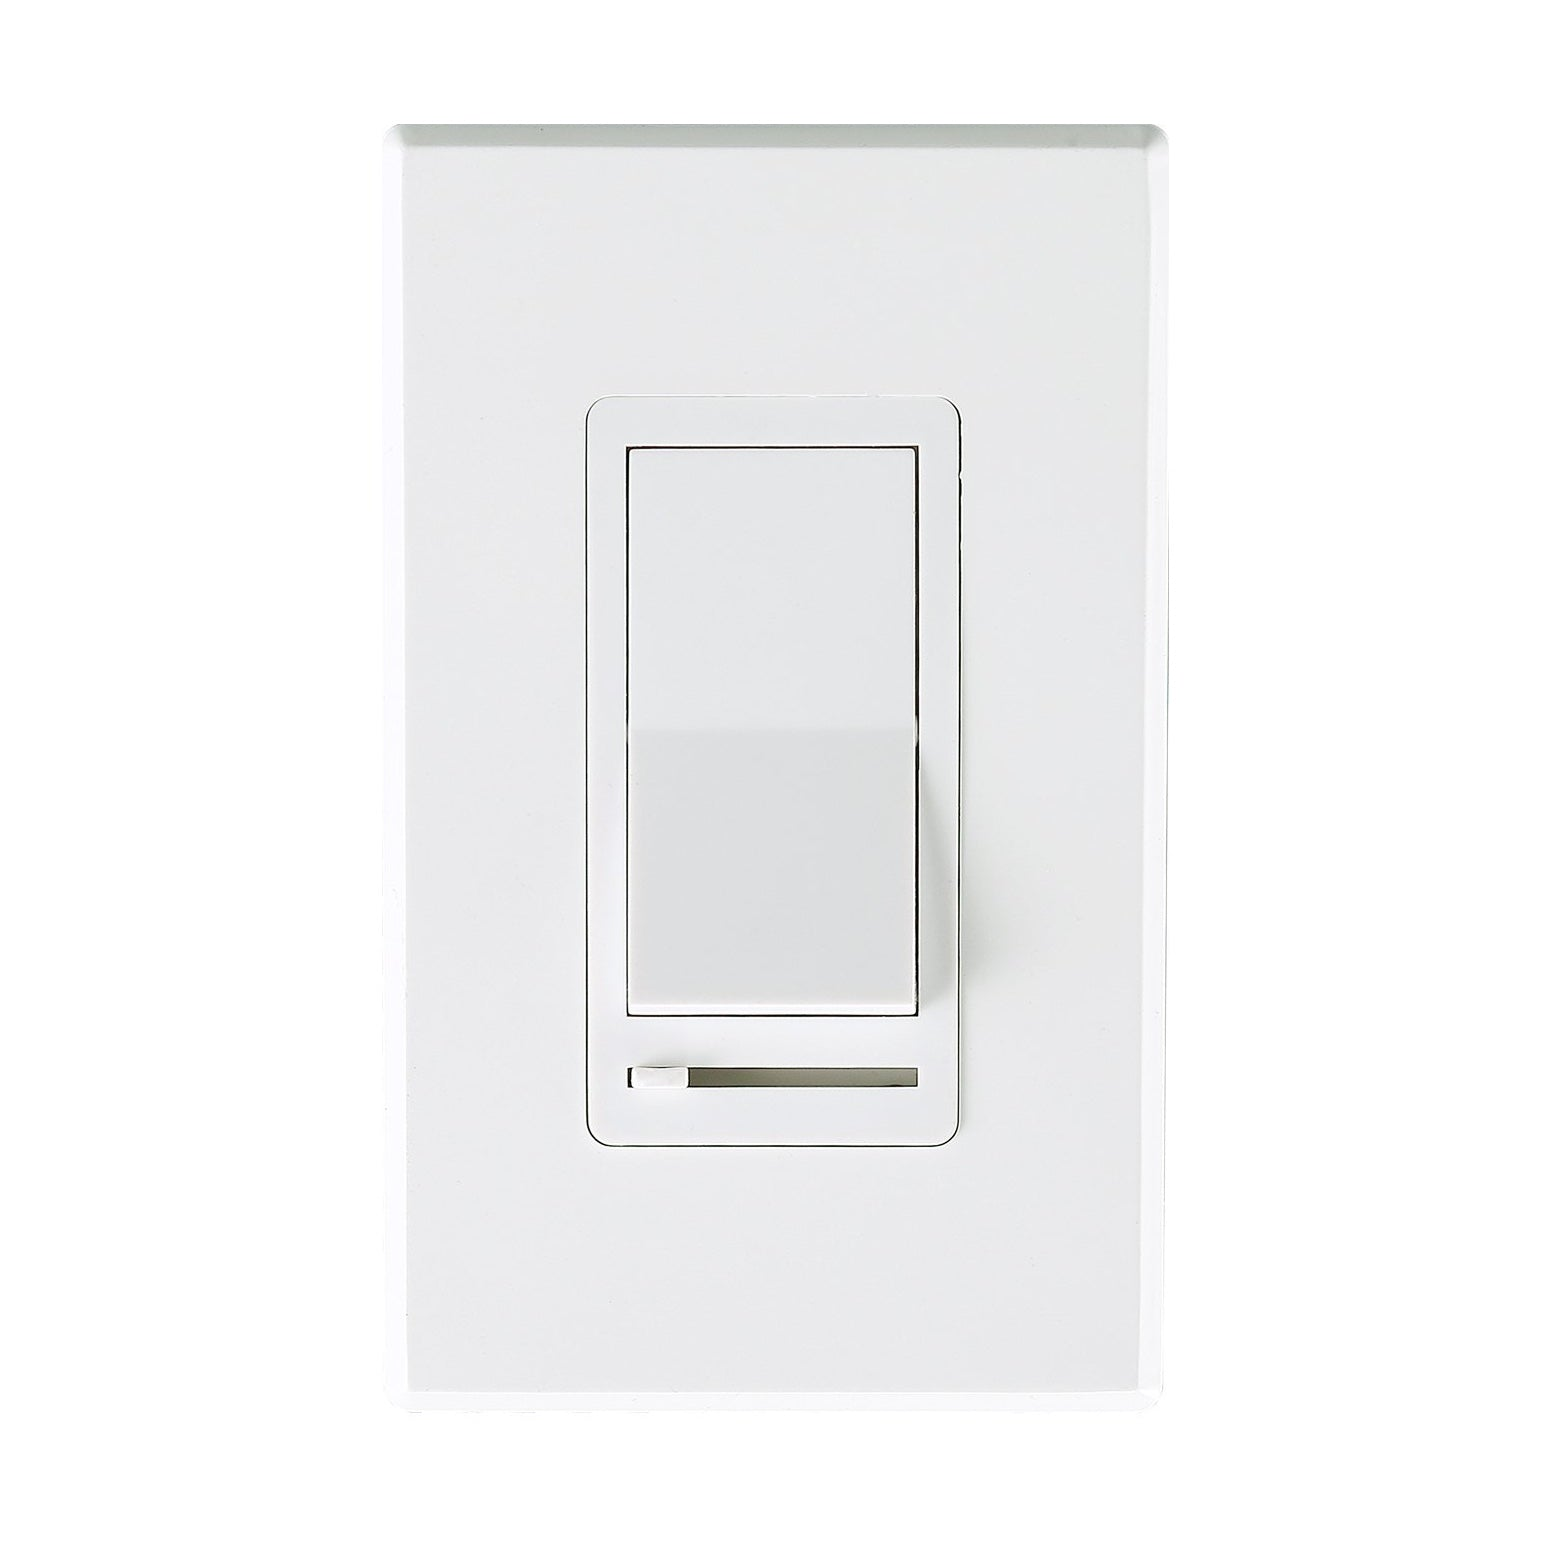 Cloudybay In Wall Dimmer Switch For LED Light/CFL/Incandescent 3-way__title